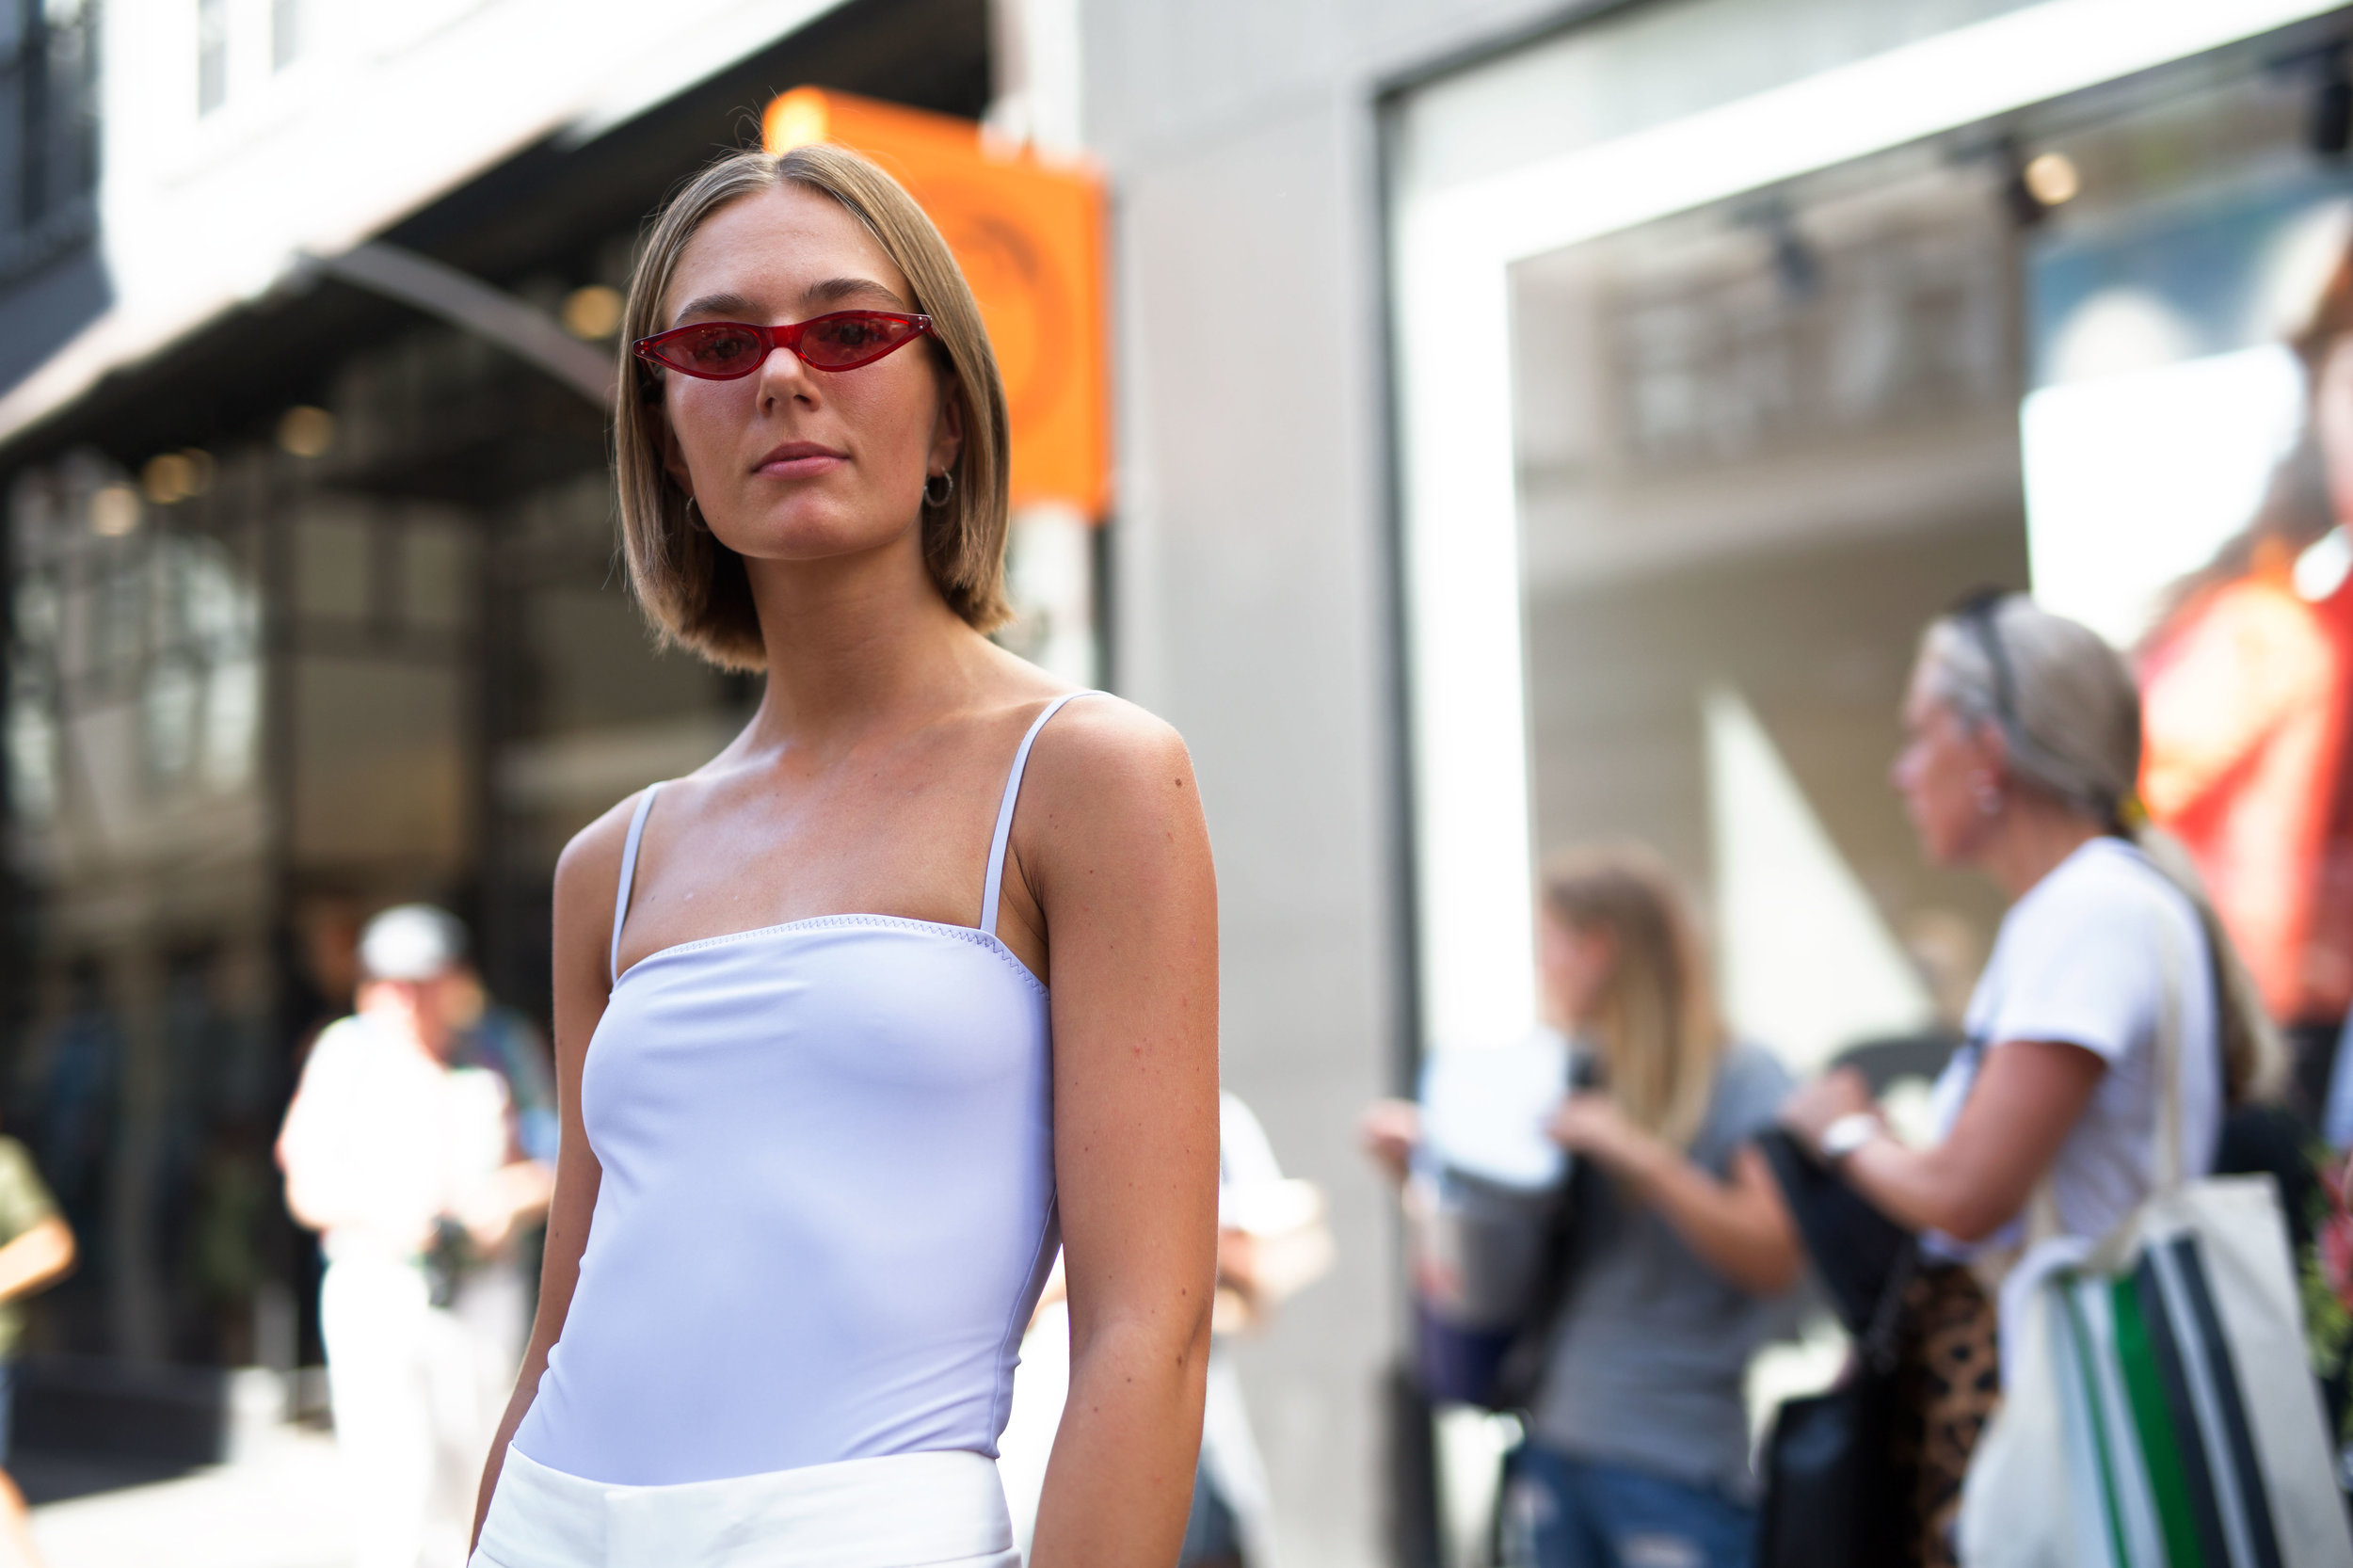 TheStreetland_Copenhagen_Fashion_Week_SS19_16.jpg